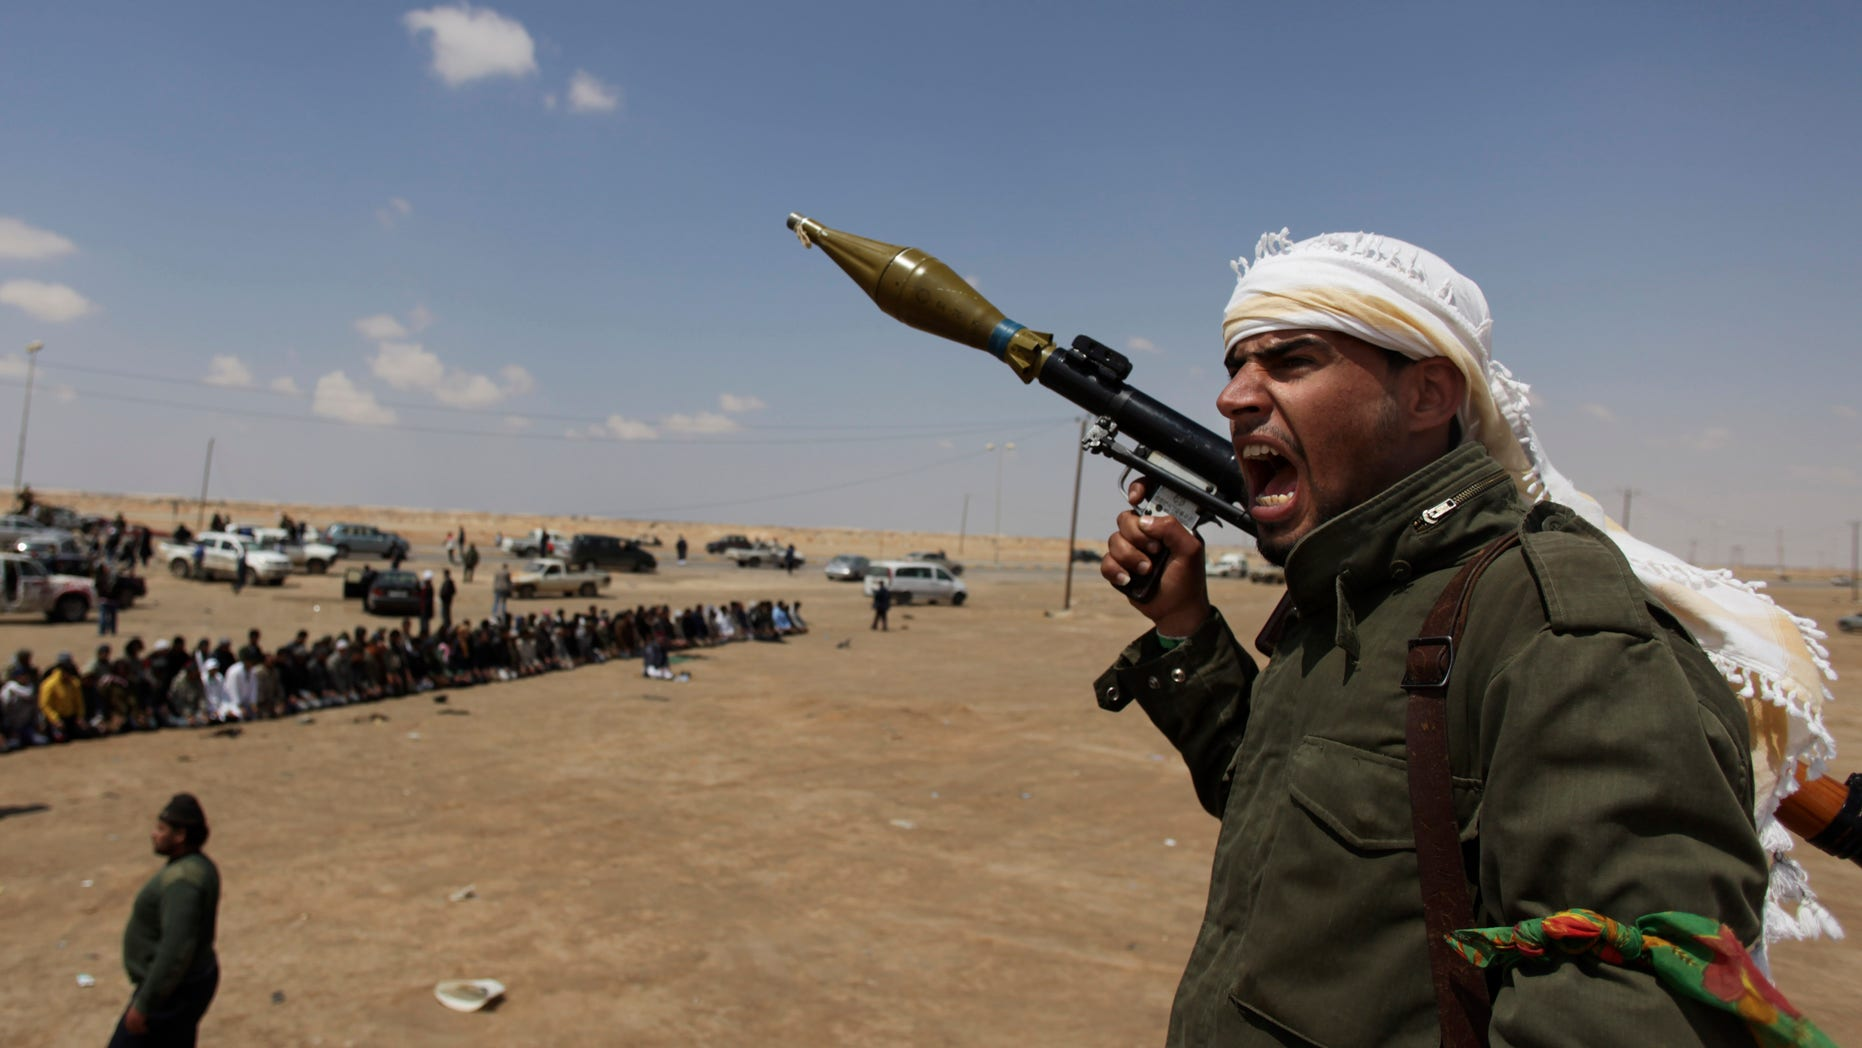 April 8: A Libyan rebel fighter, holding a rocket launcher, shouts religious slogans after gun shots were heard as fellow comrades offer prayers in the background in Ajdabia, Libya.